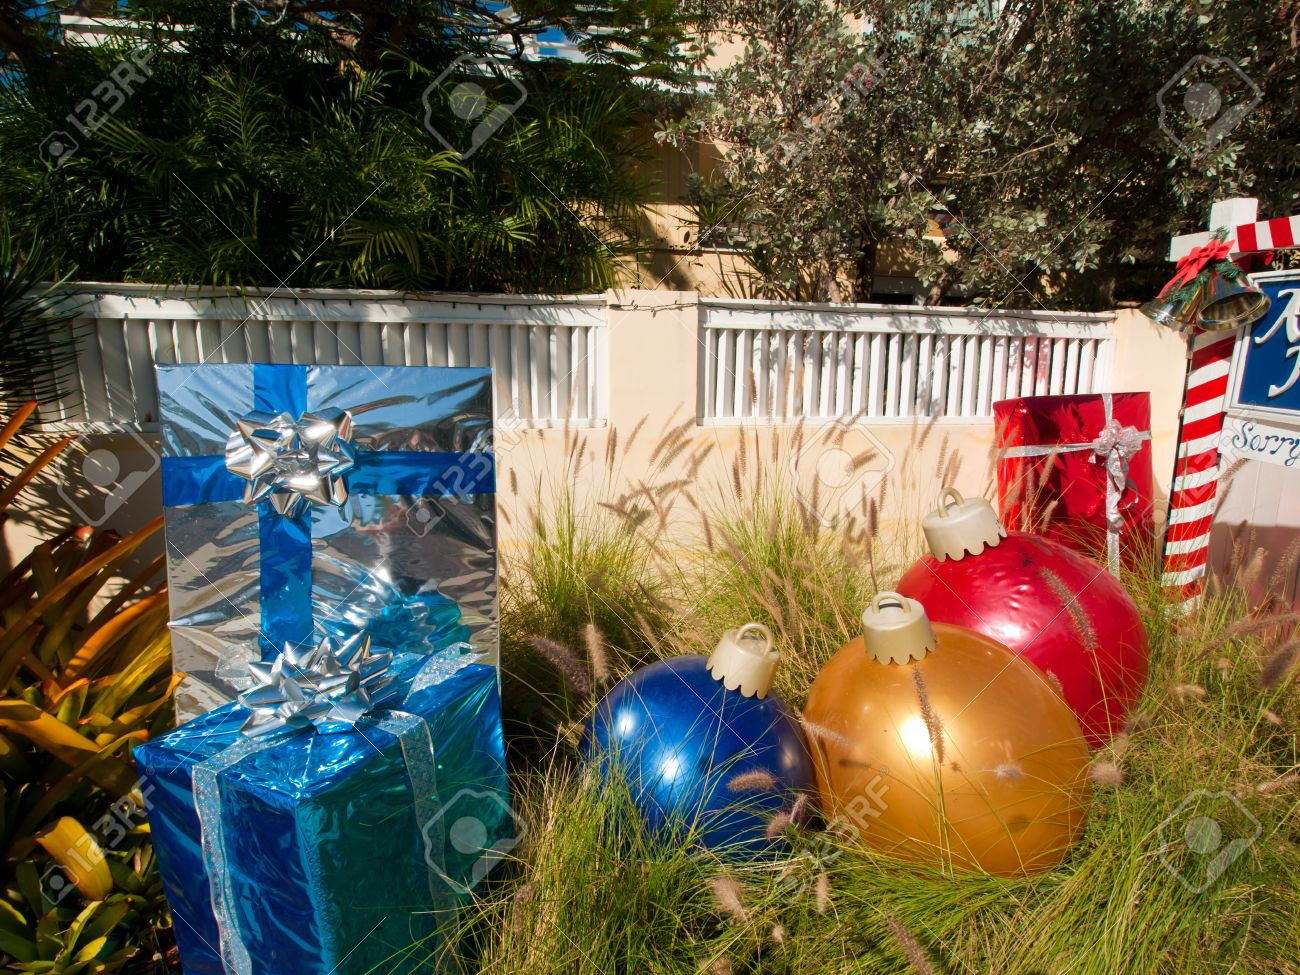 Florida christmas ornament - Front Yard Decorated For Christmas On Key West Florida Stock Photo 12444053